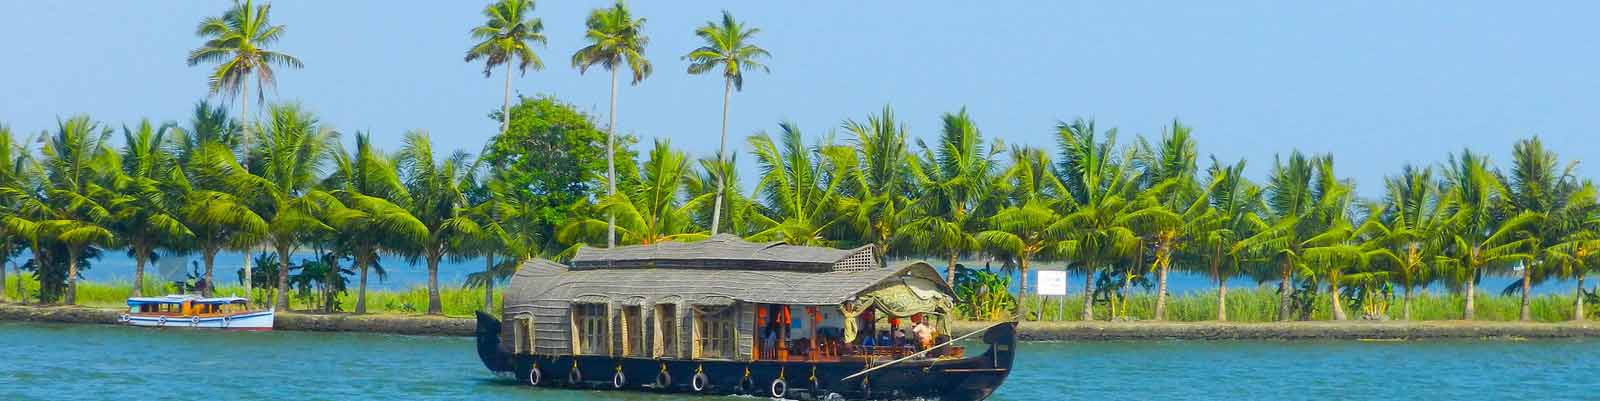 kerala tour and honeymoon packages from Ernakulam